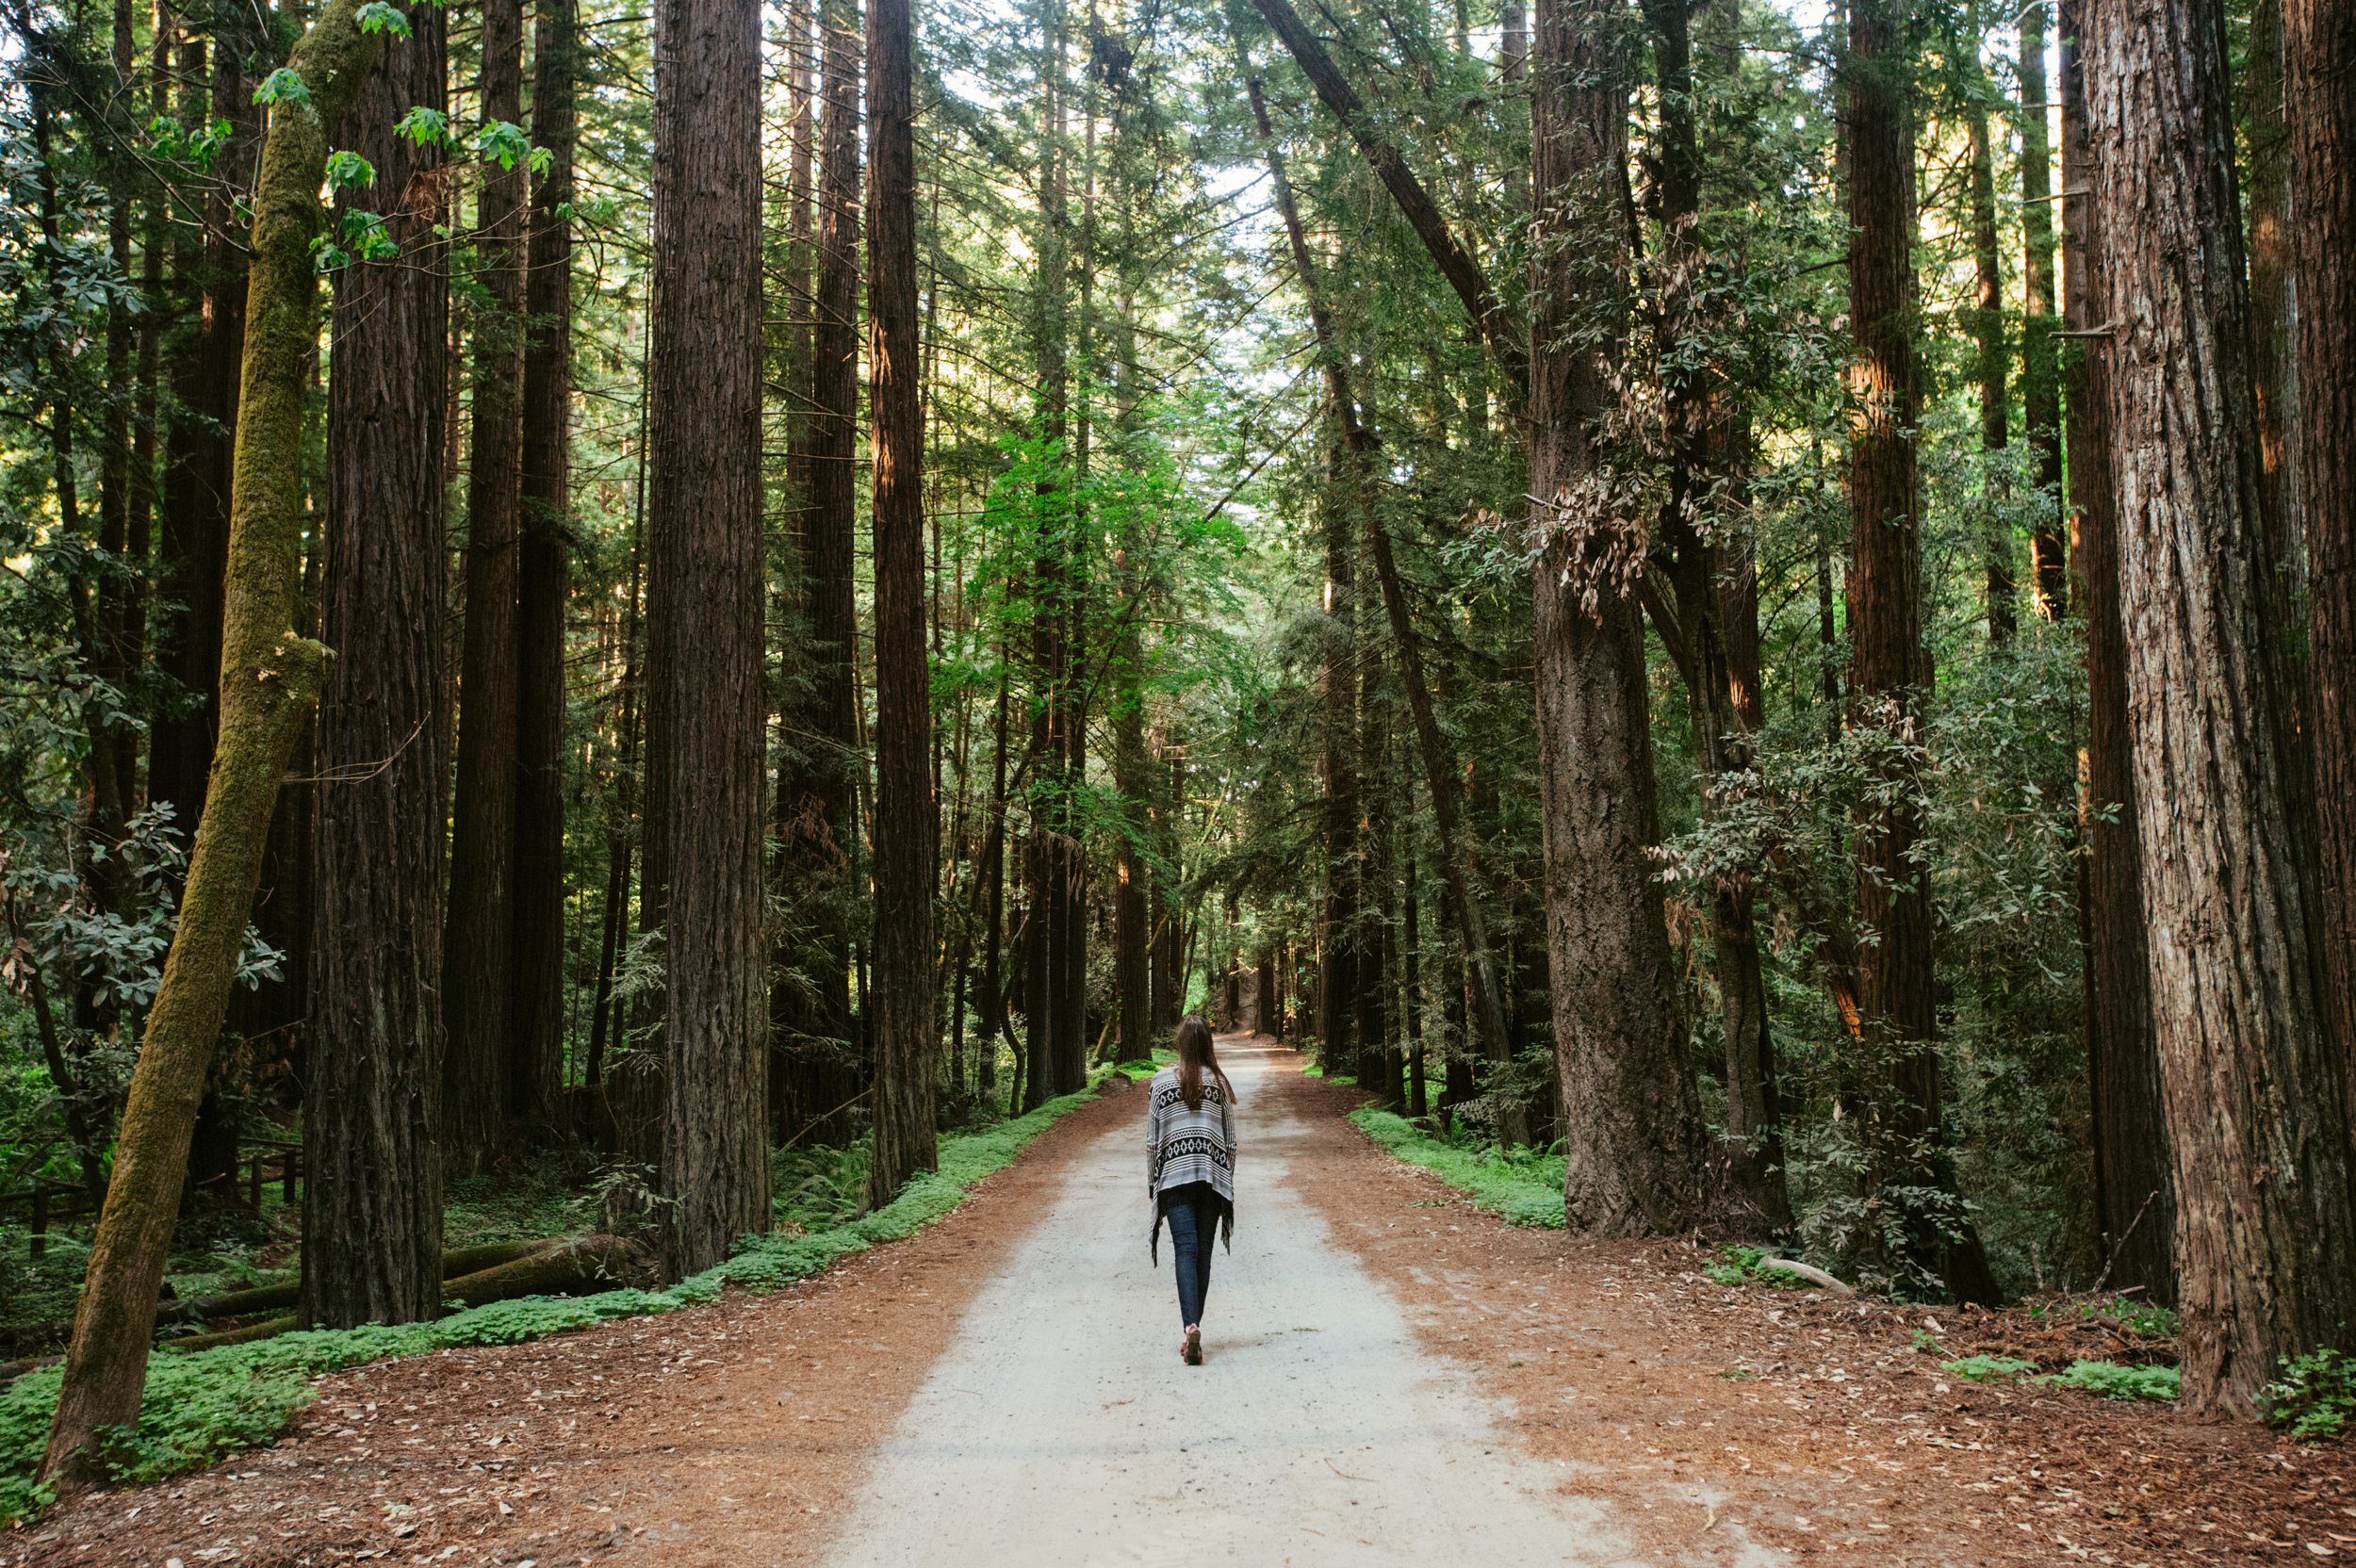 Thanks Travis for snapping this pic of me beneath some giant redwoods!